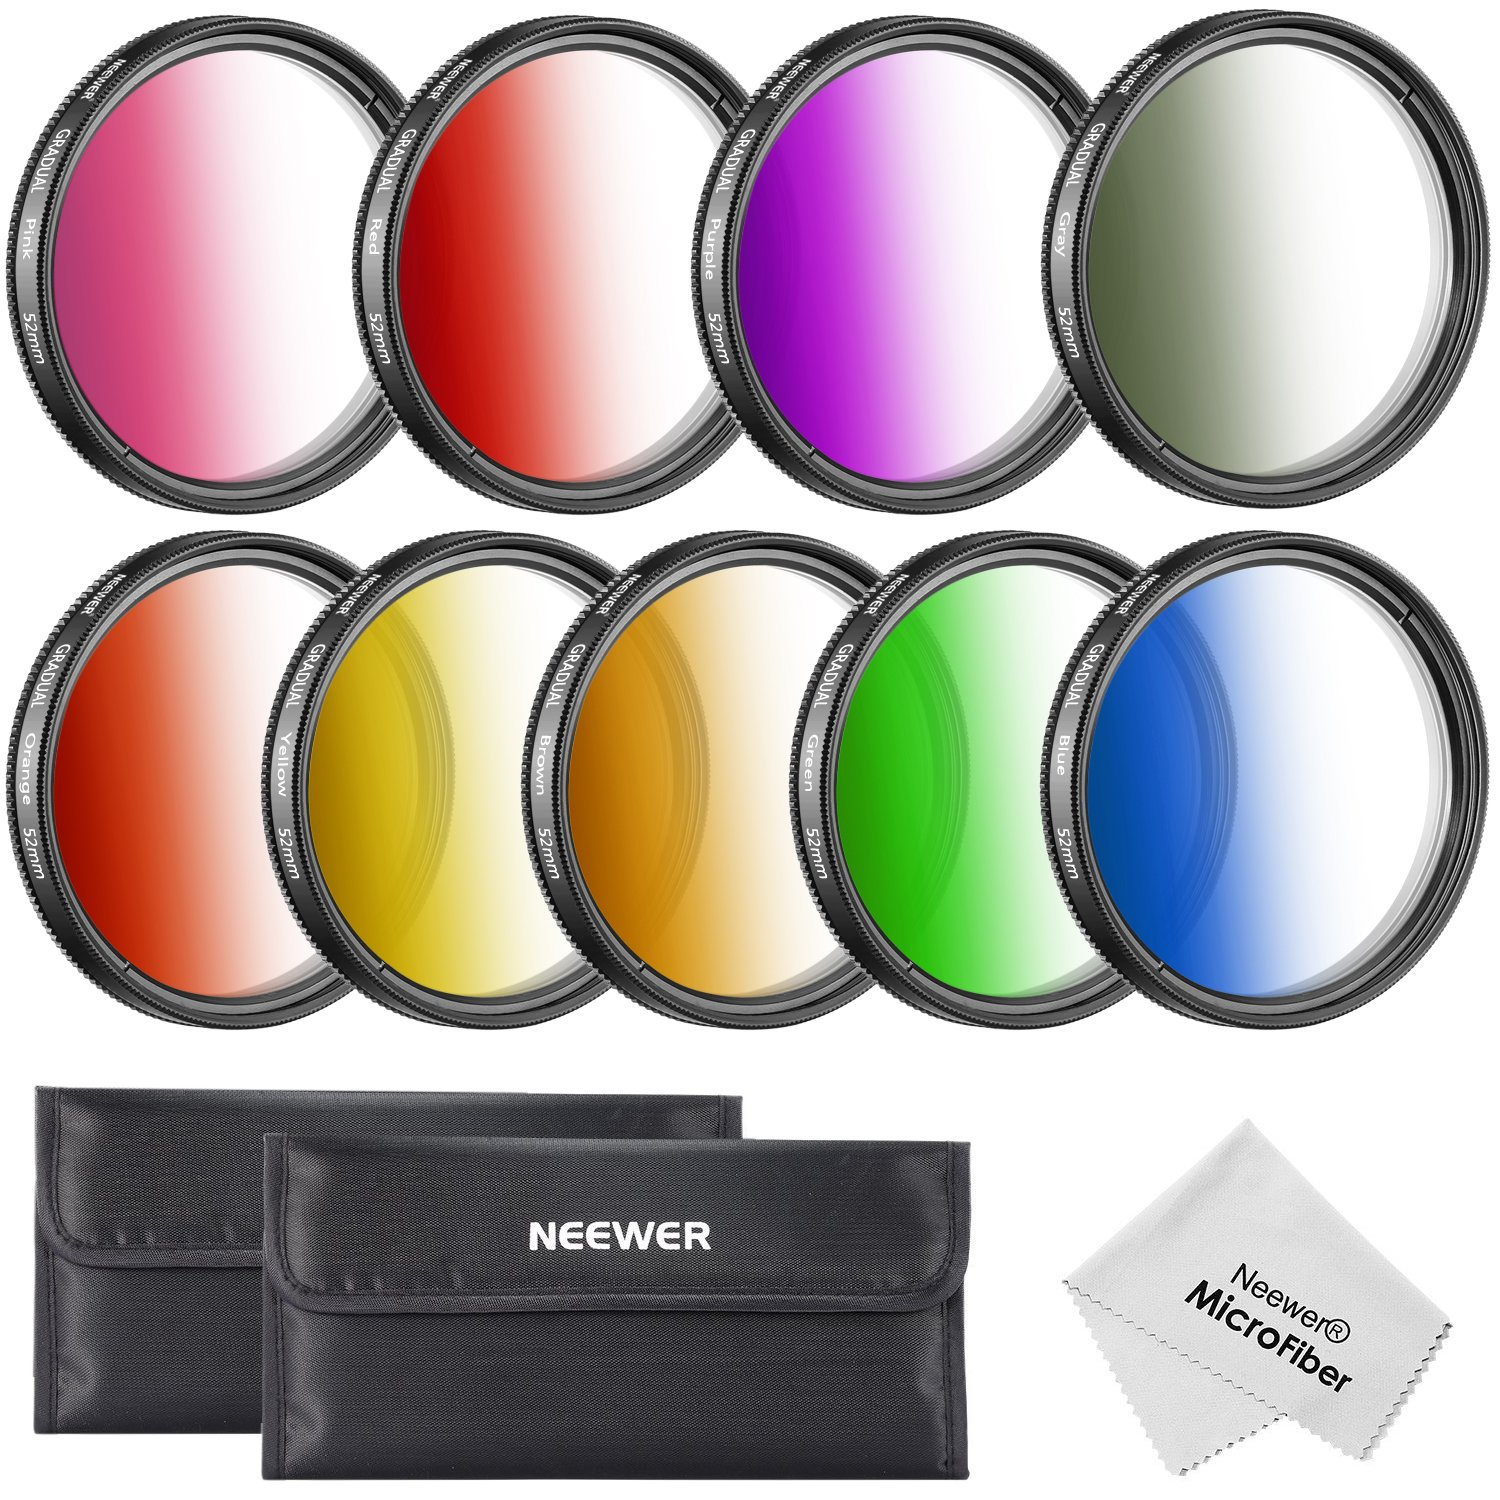 Neewer 52MM Complete Graduated Color Lens Filter Set (9pcs) for Camera Lens with 52MM Filter Thread - Includes: Red, Orange, Blue, Yellow, Green, Brown, Purple, Pink and Gray ND Filters + Filter Carry Pounch by Neewer